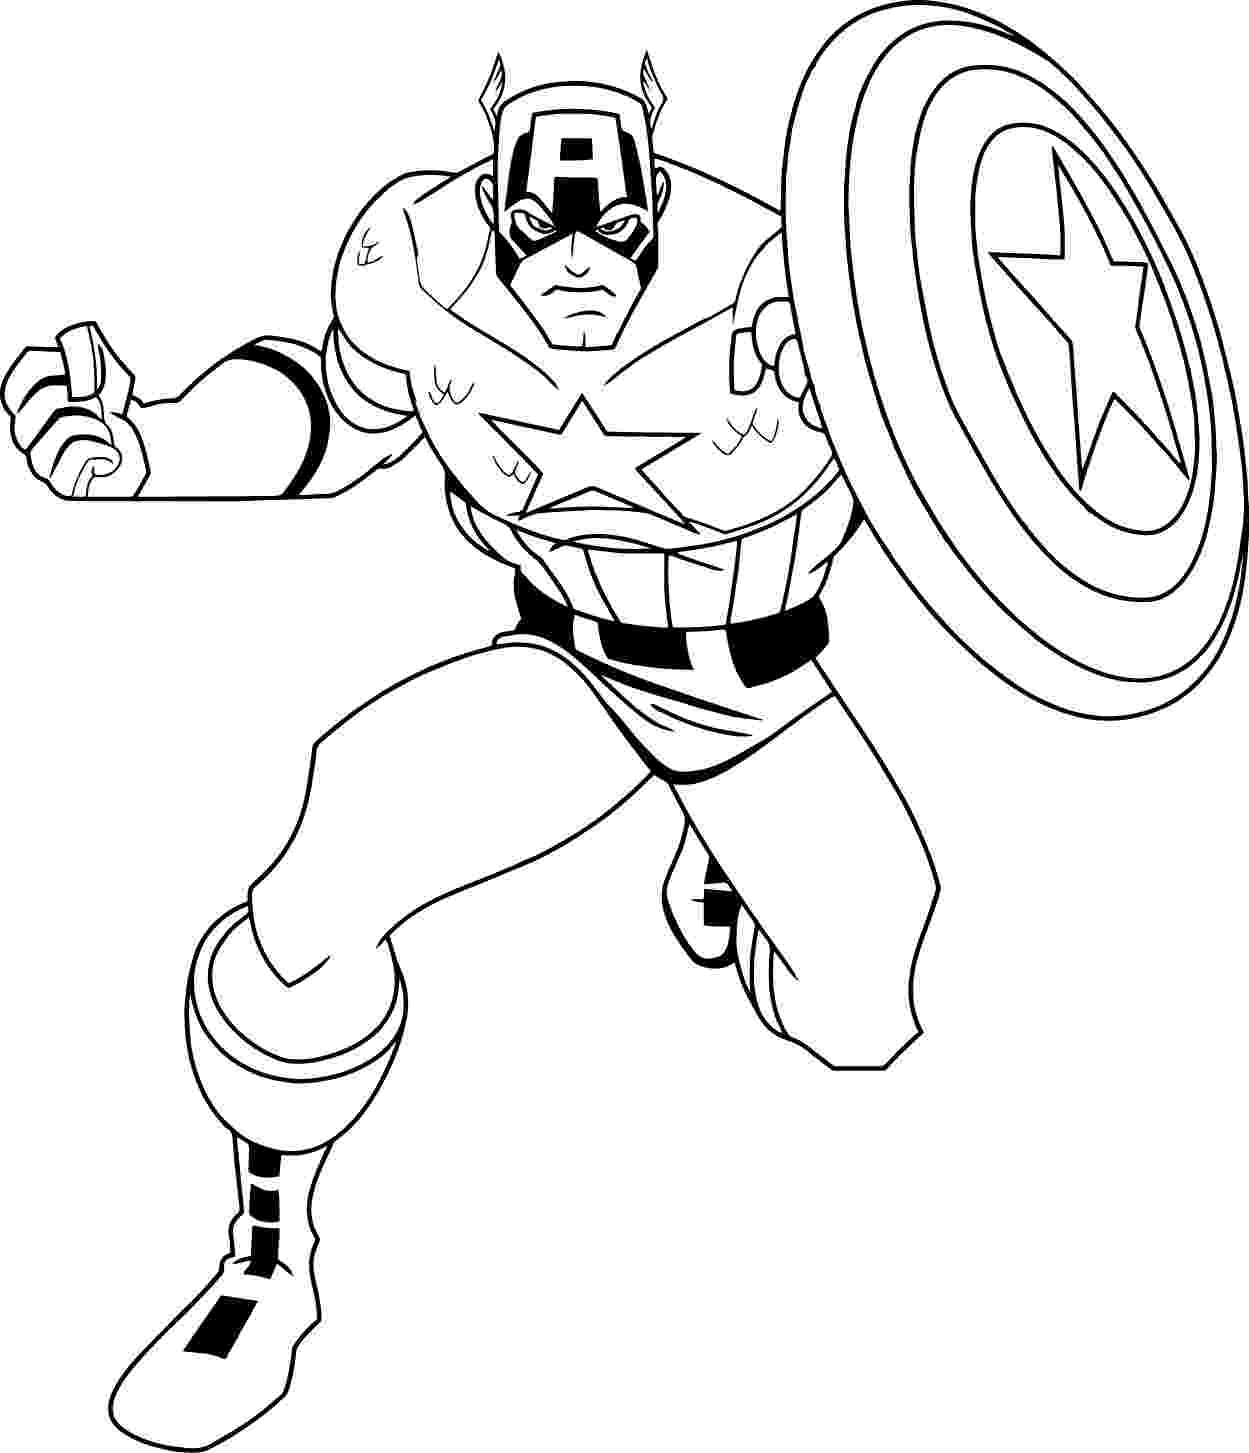 captain america coloring pages free printable captain america coloring pages for kids america coloring captain pages